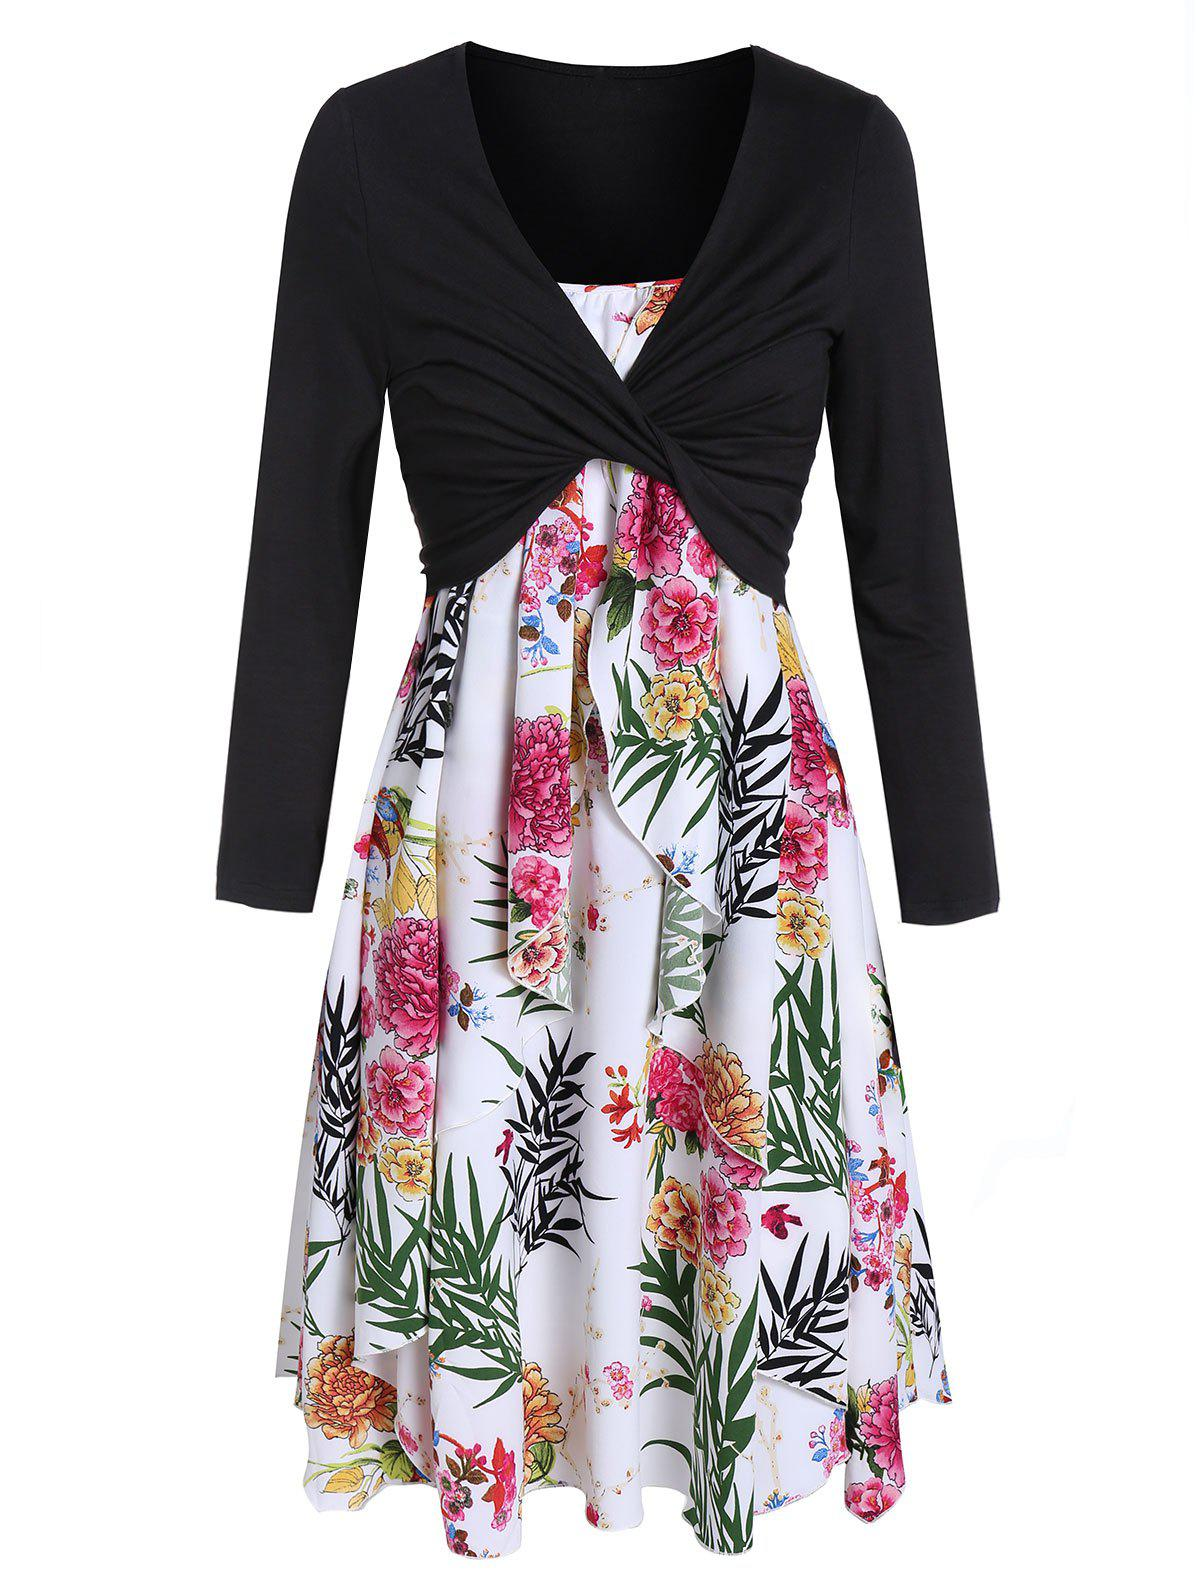 Trendy Flower Print Overlap Dress and Long Sleeve T-shirt Set